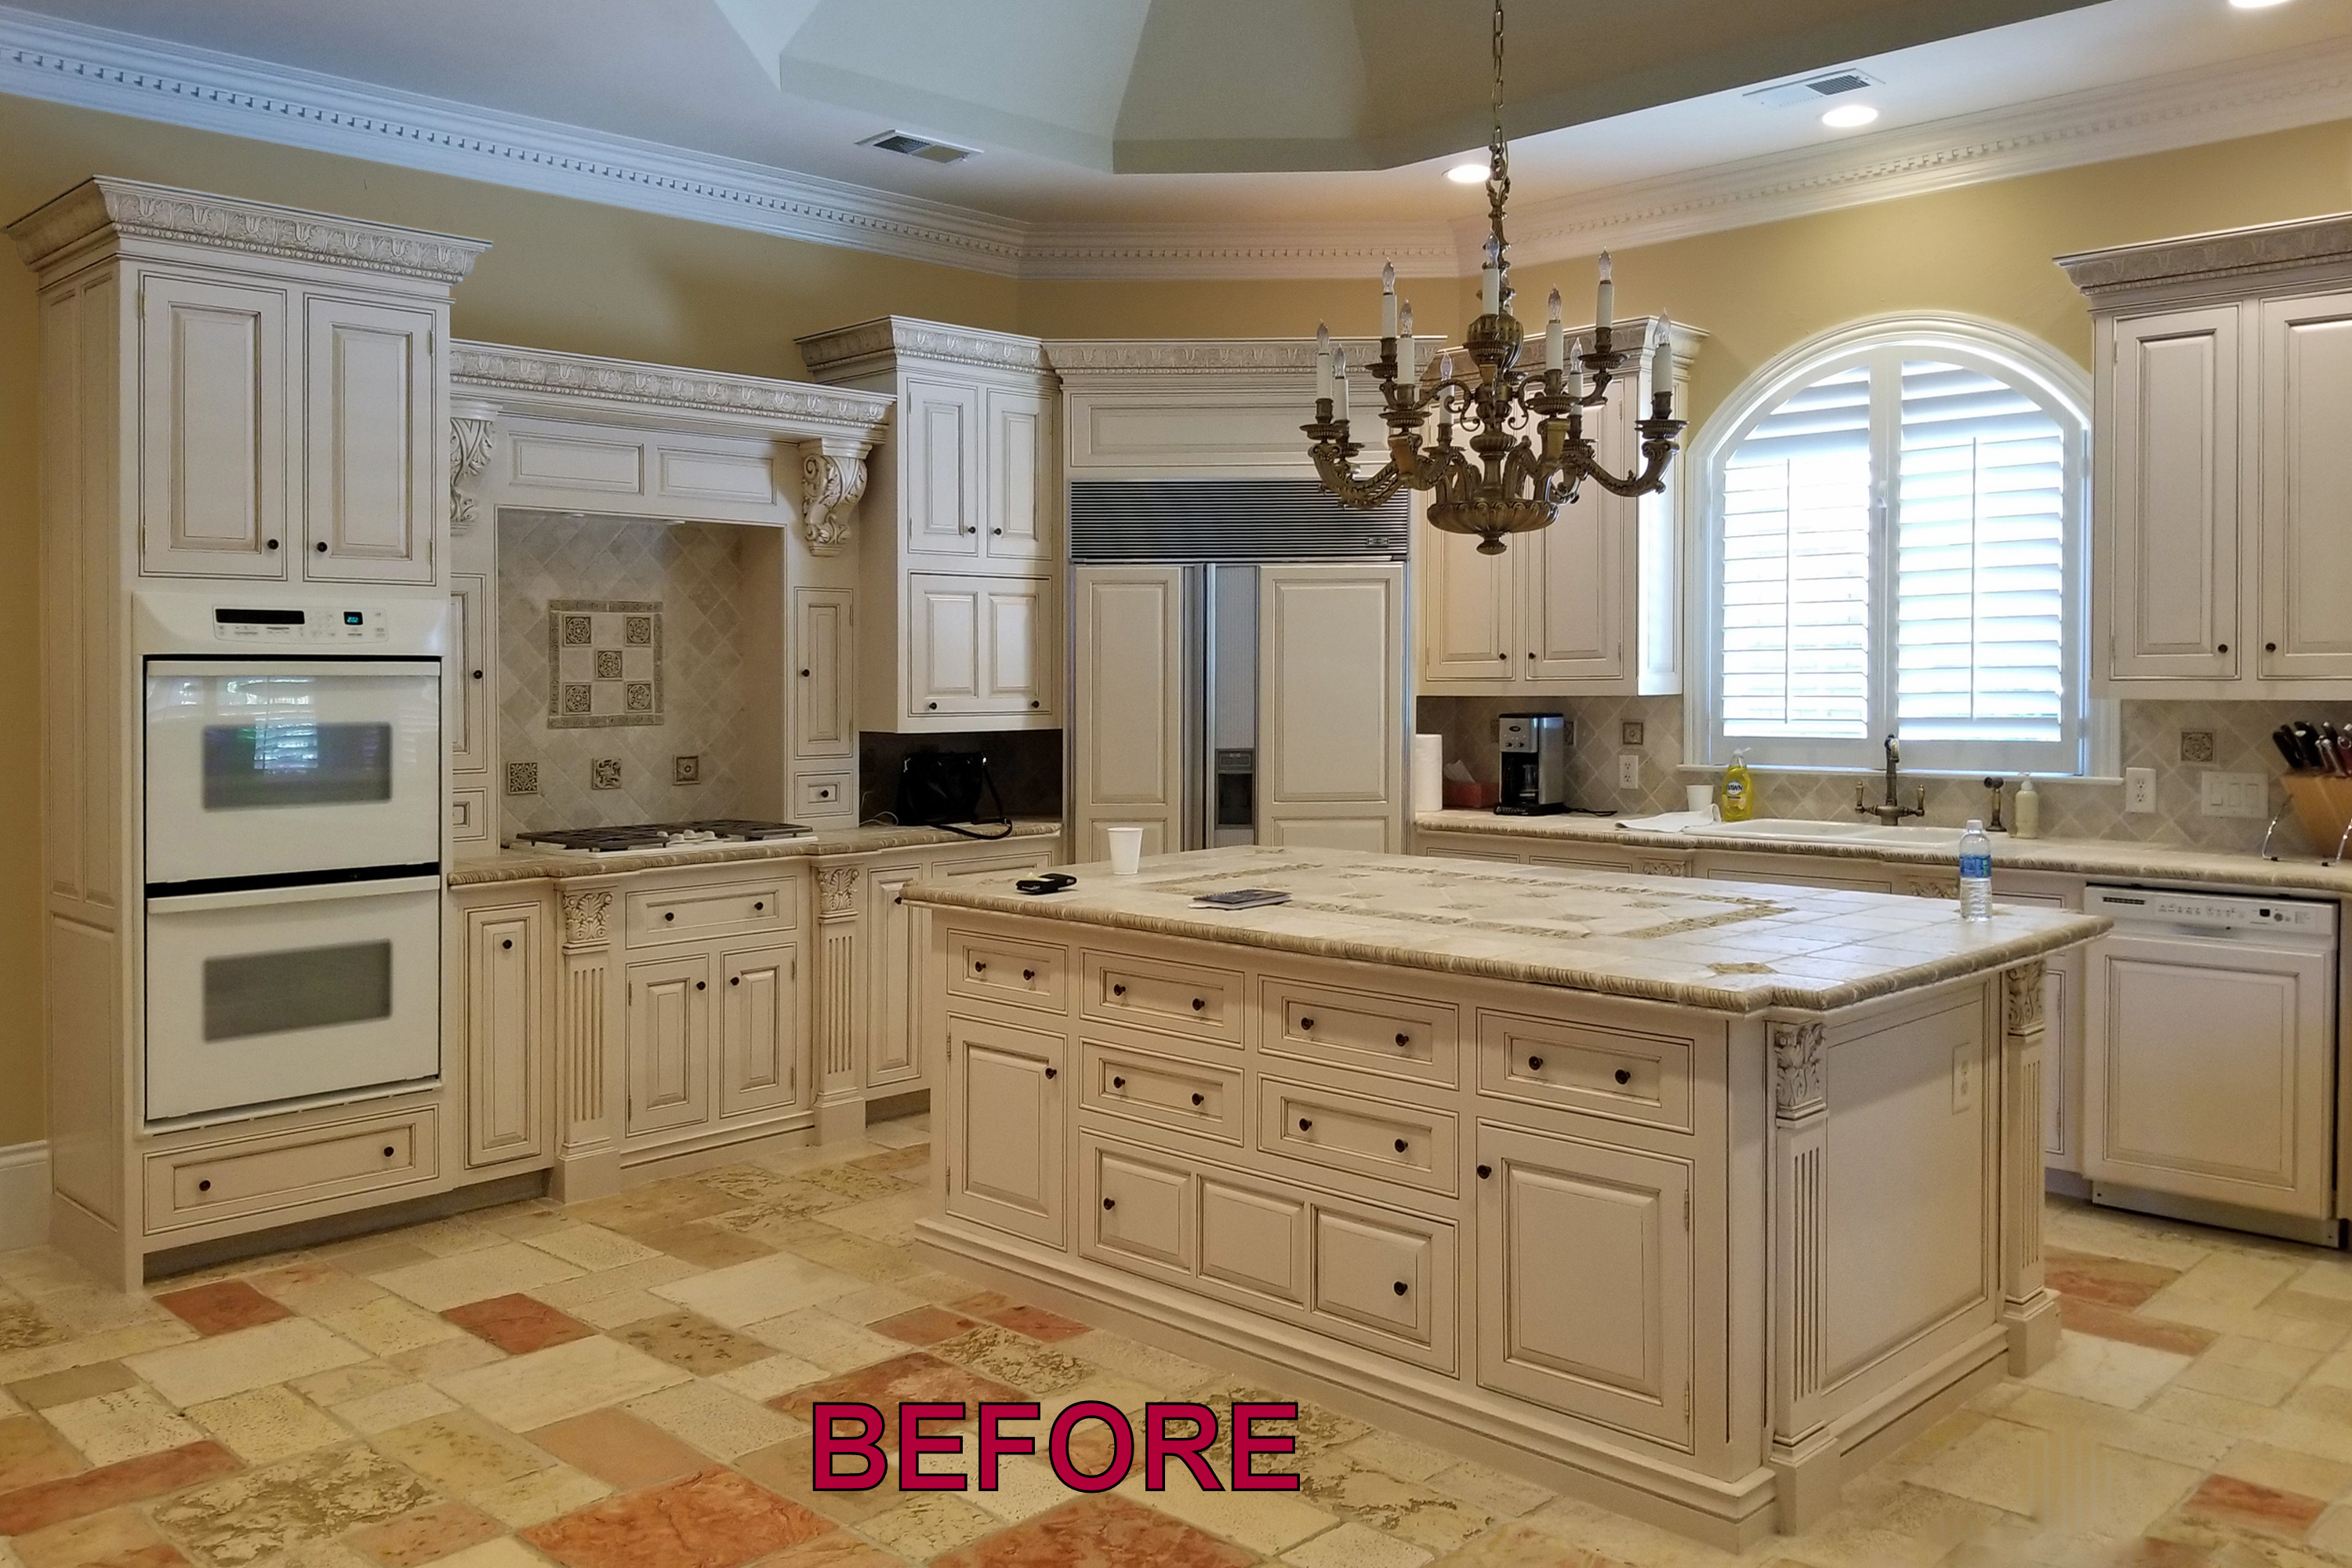 1-BEFORE-kitchen-remodel-20190529_140111pspic